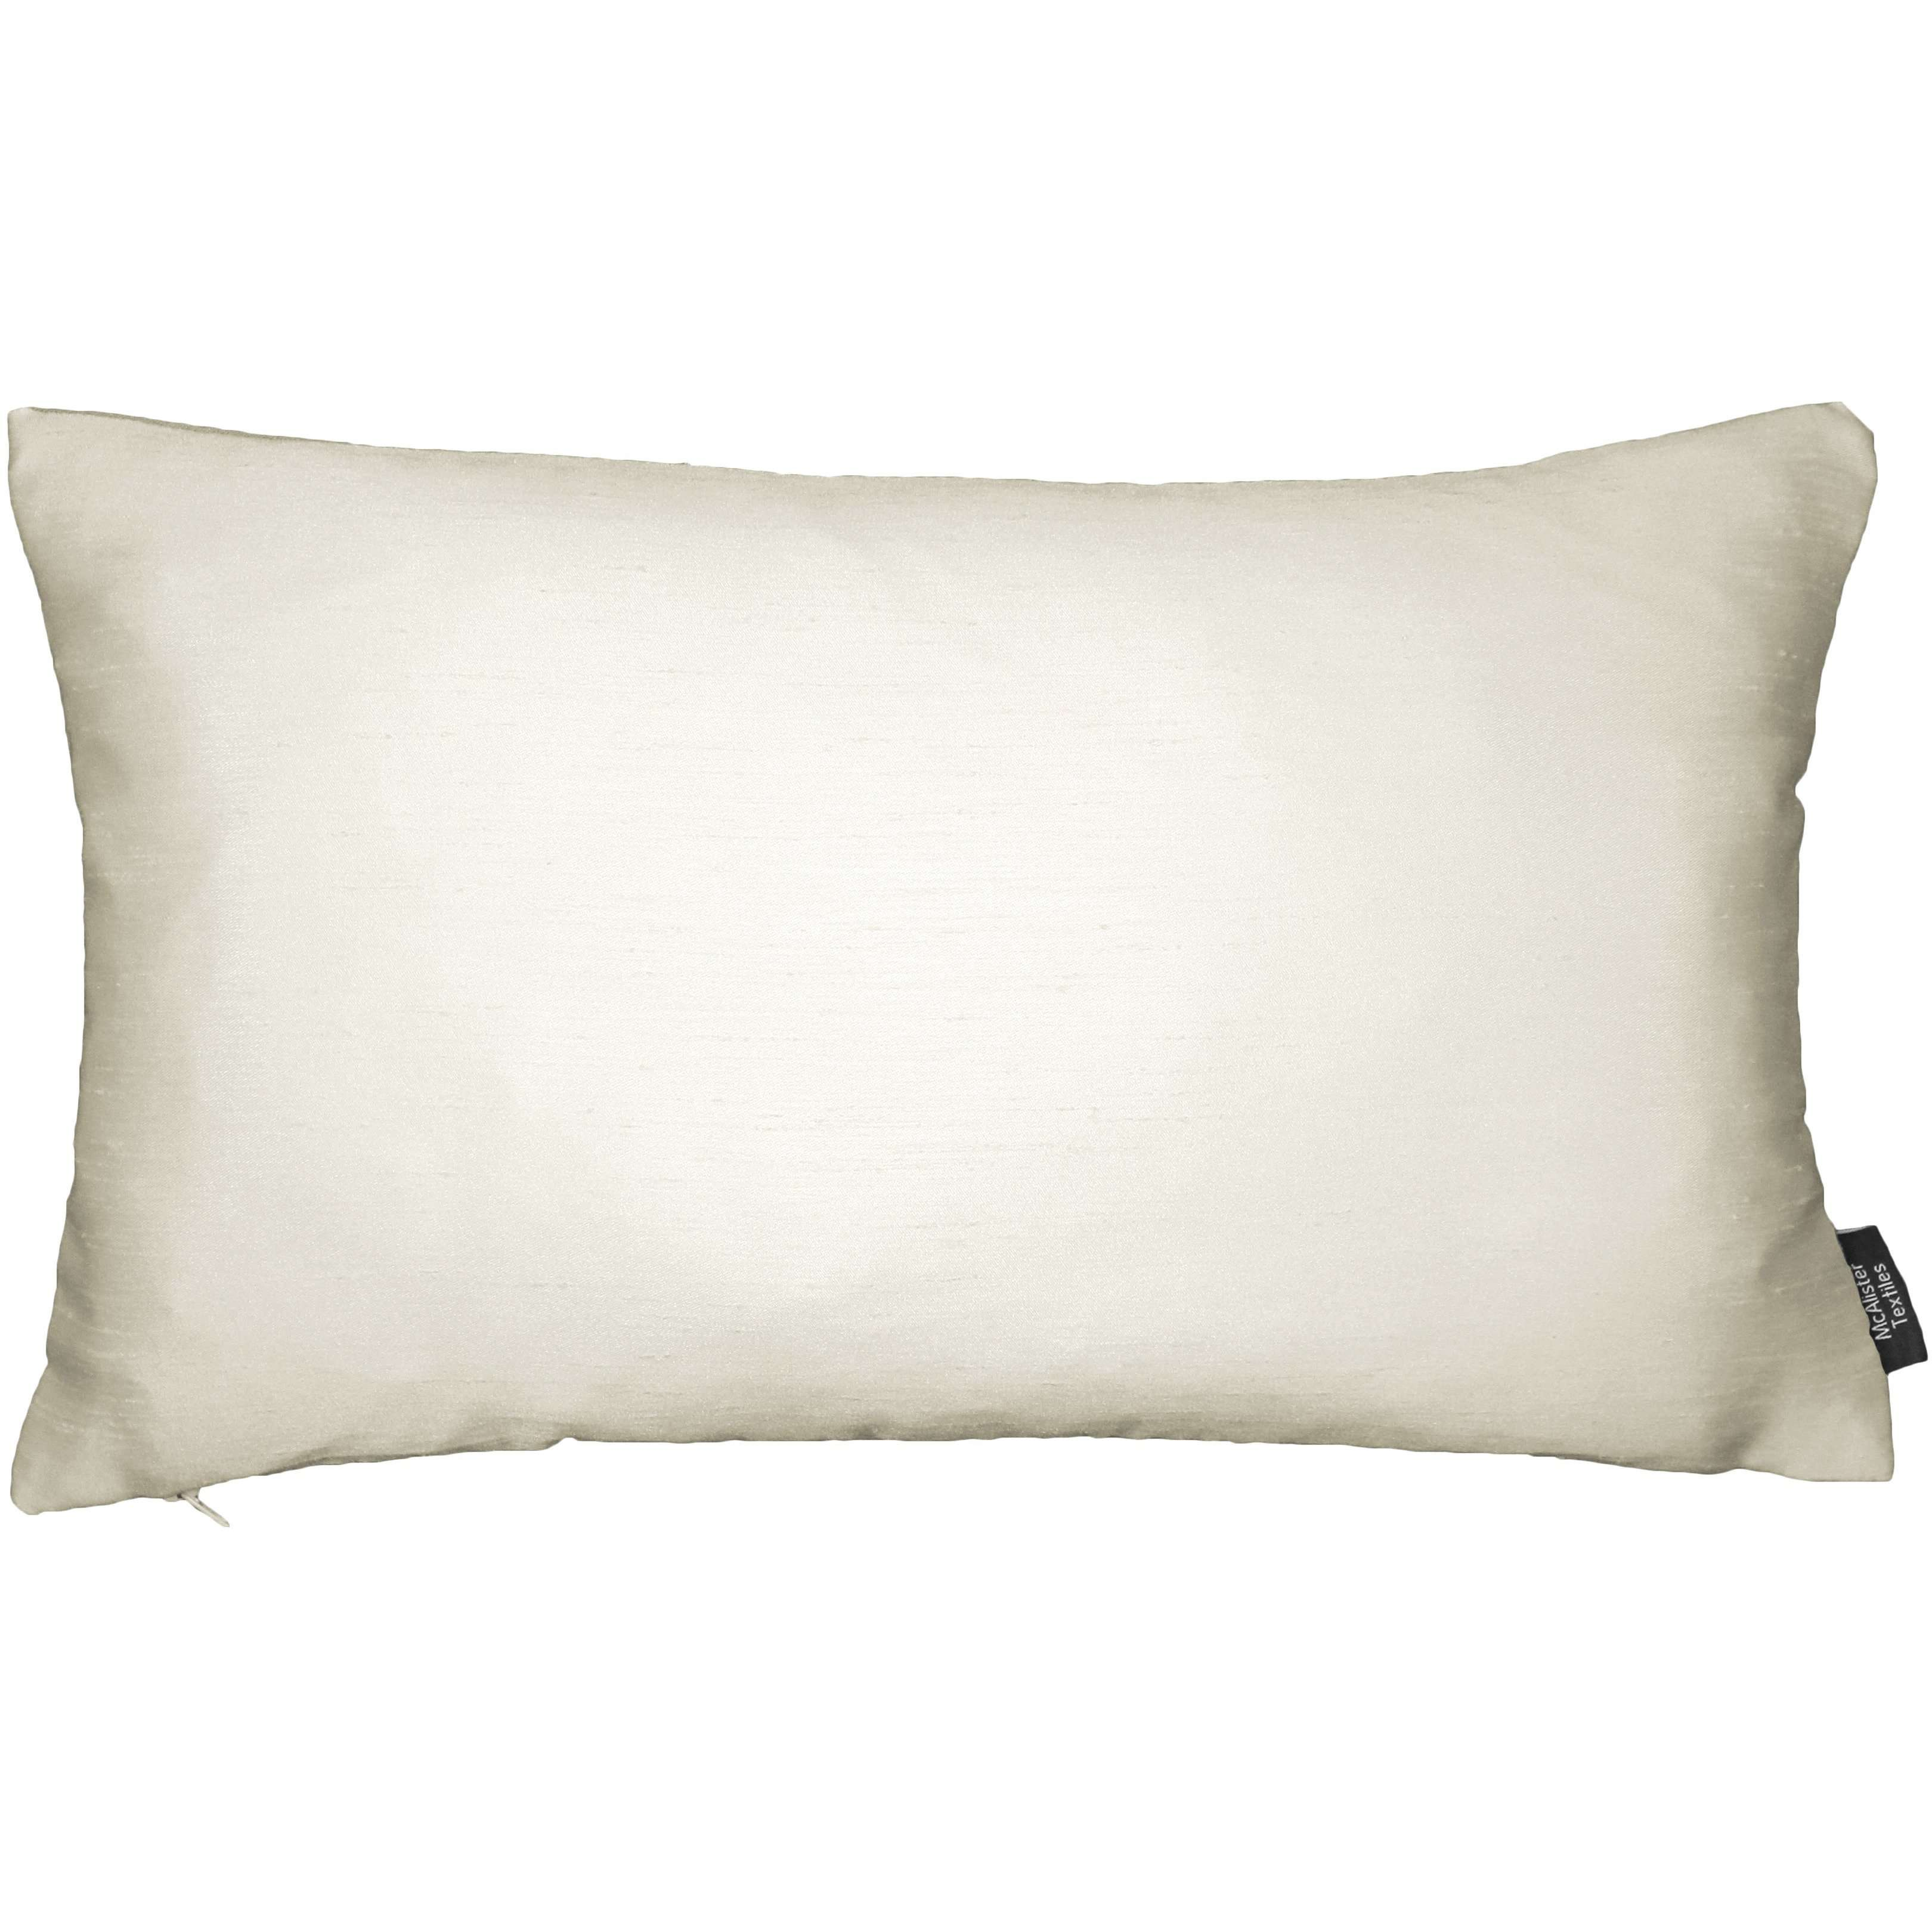 McAlister Textiles Rocco Contrast Faux Silk Natural + Taupe Pillow Pillow Cover Only 50cm x 30cm